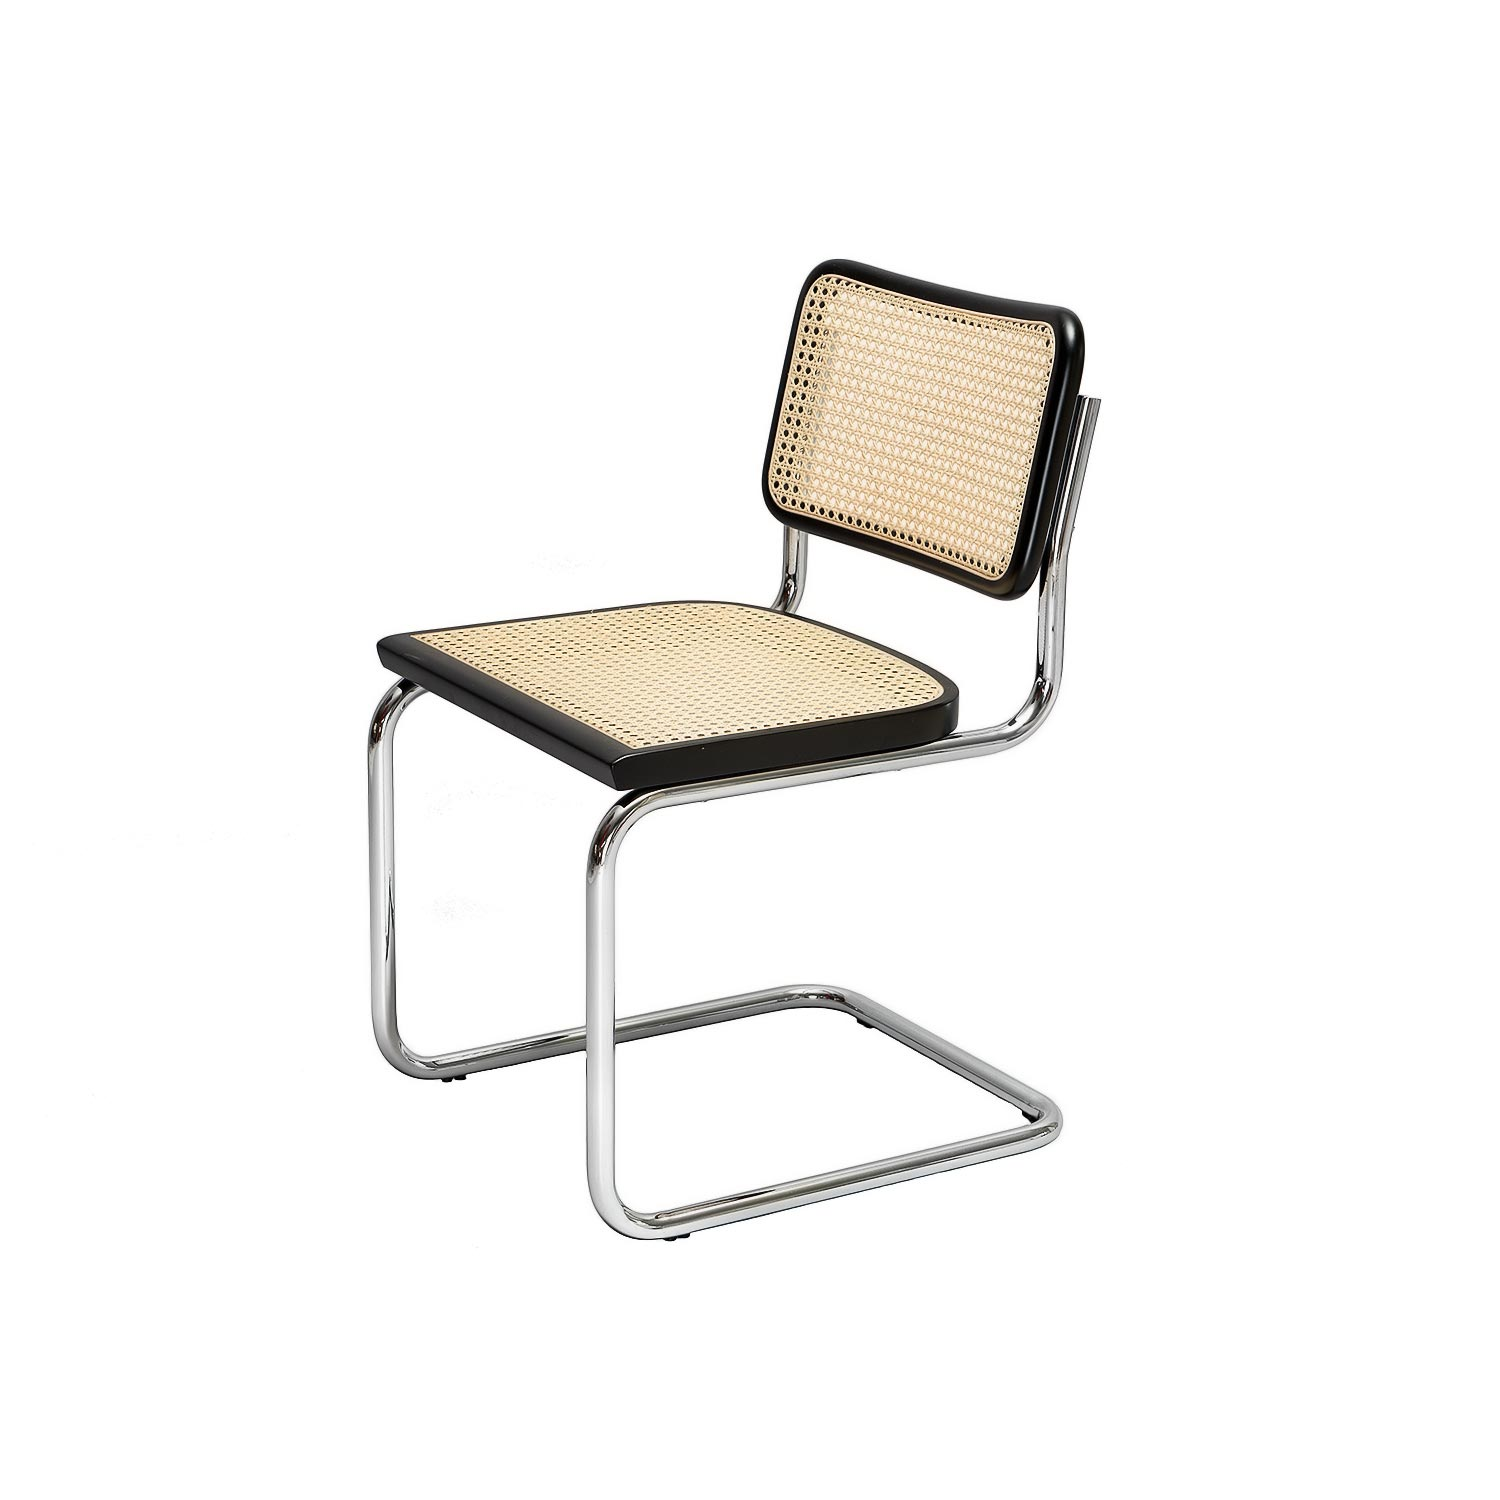 Marcel Breuer Cesca Chair B32  sc 1 st  steelform & Cesca Chair B 32 designed by Marcel Breuer | steelform design classics